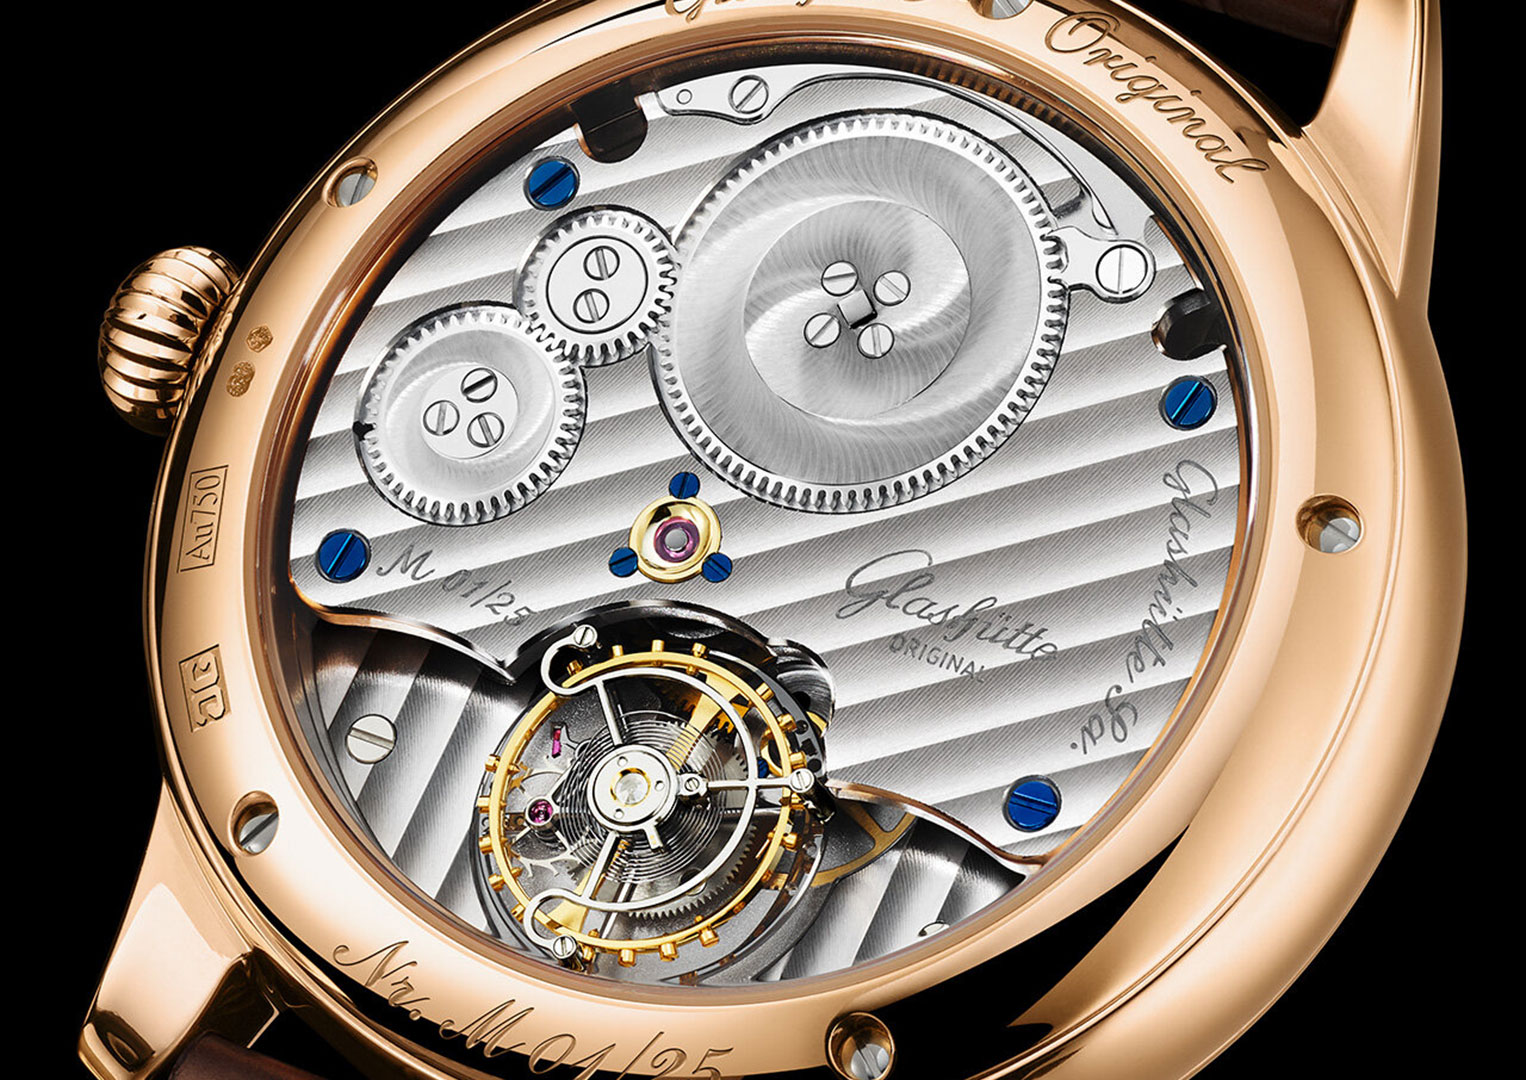 A flying tourbillon is only supported on one side